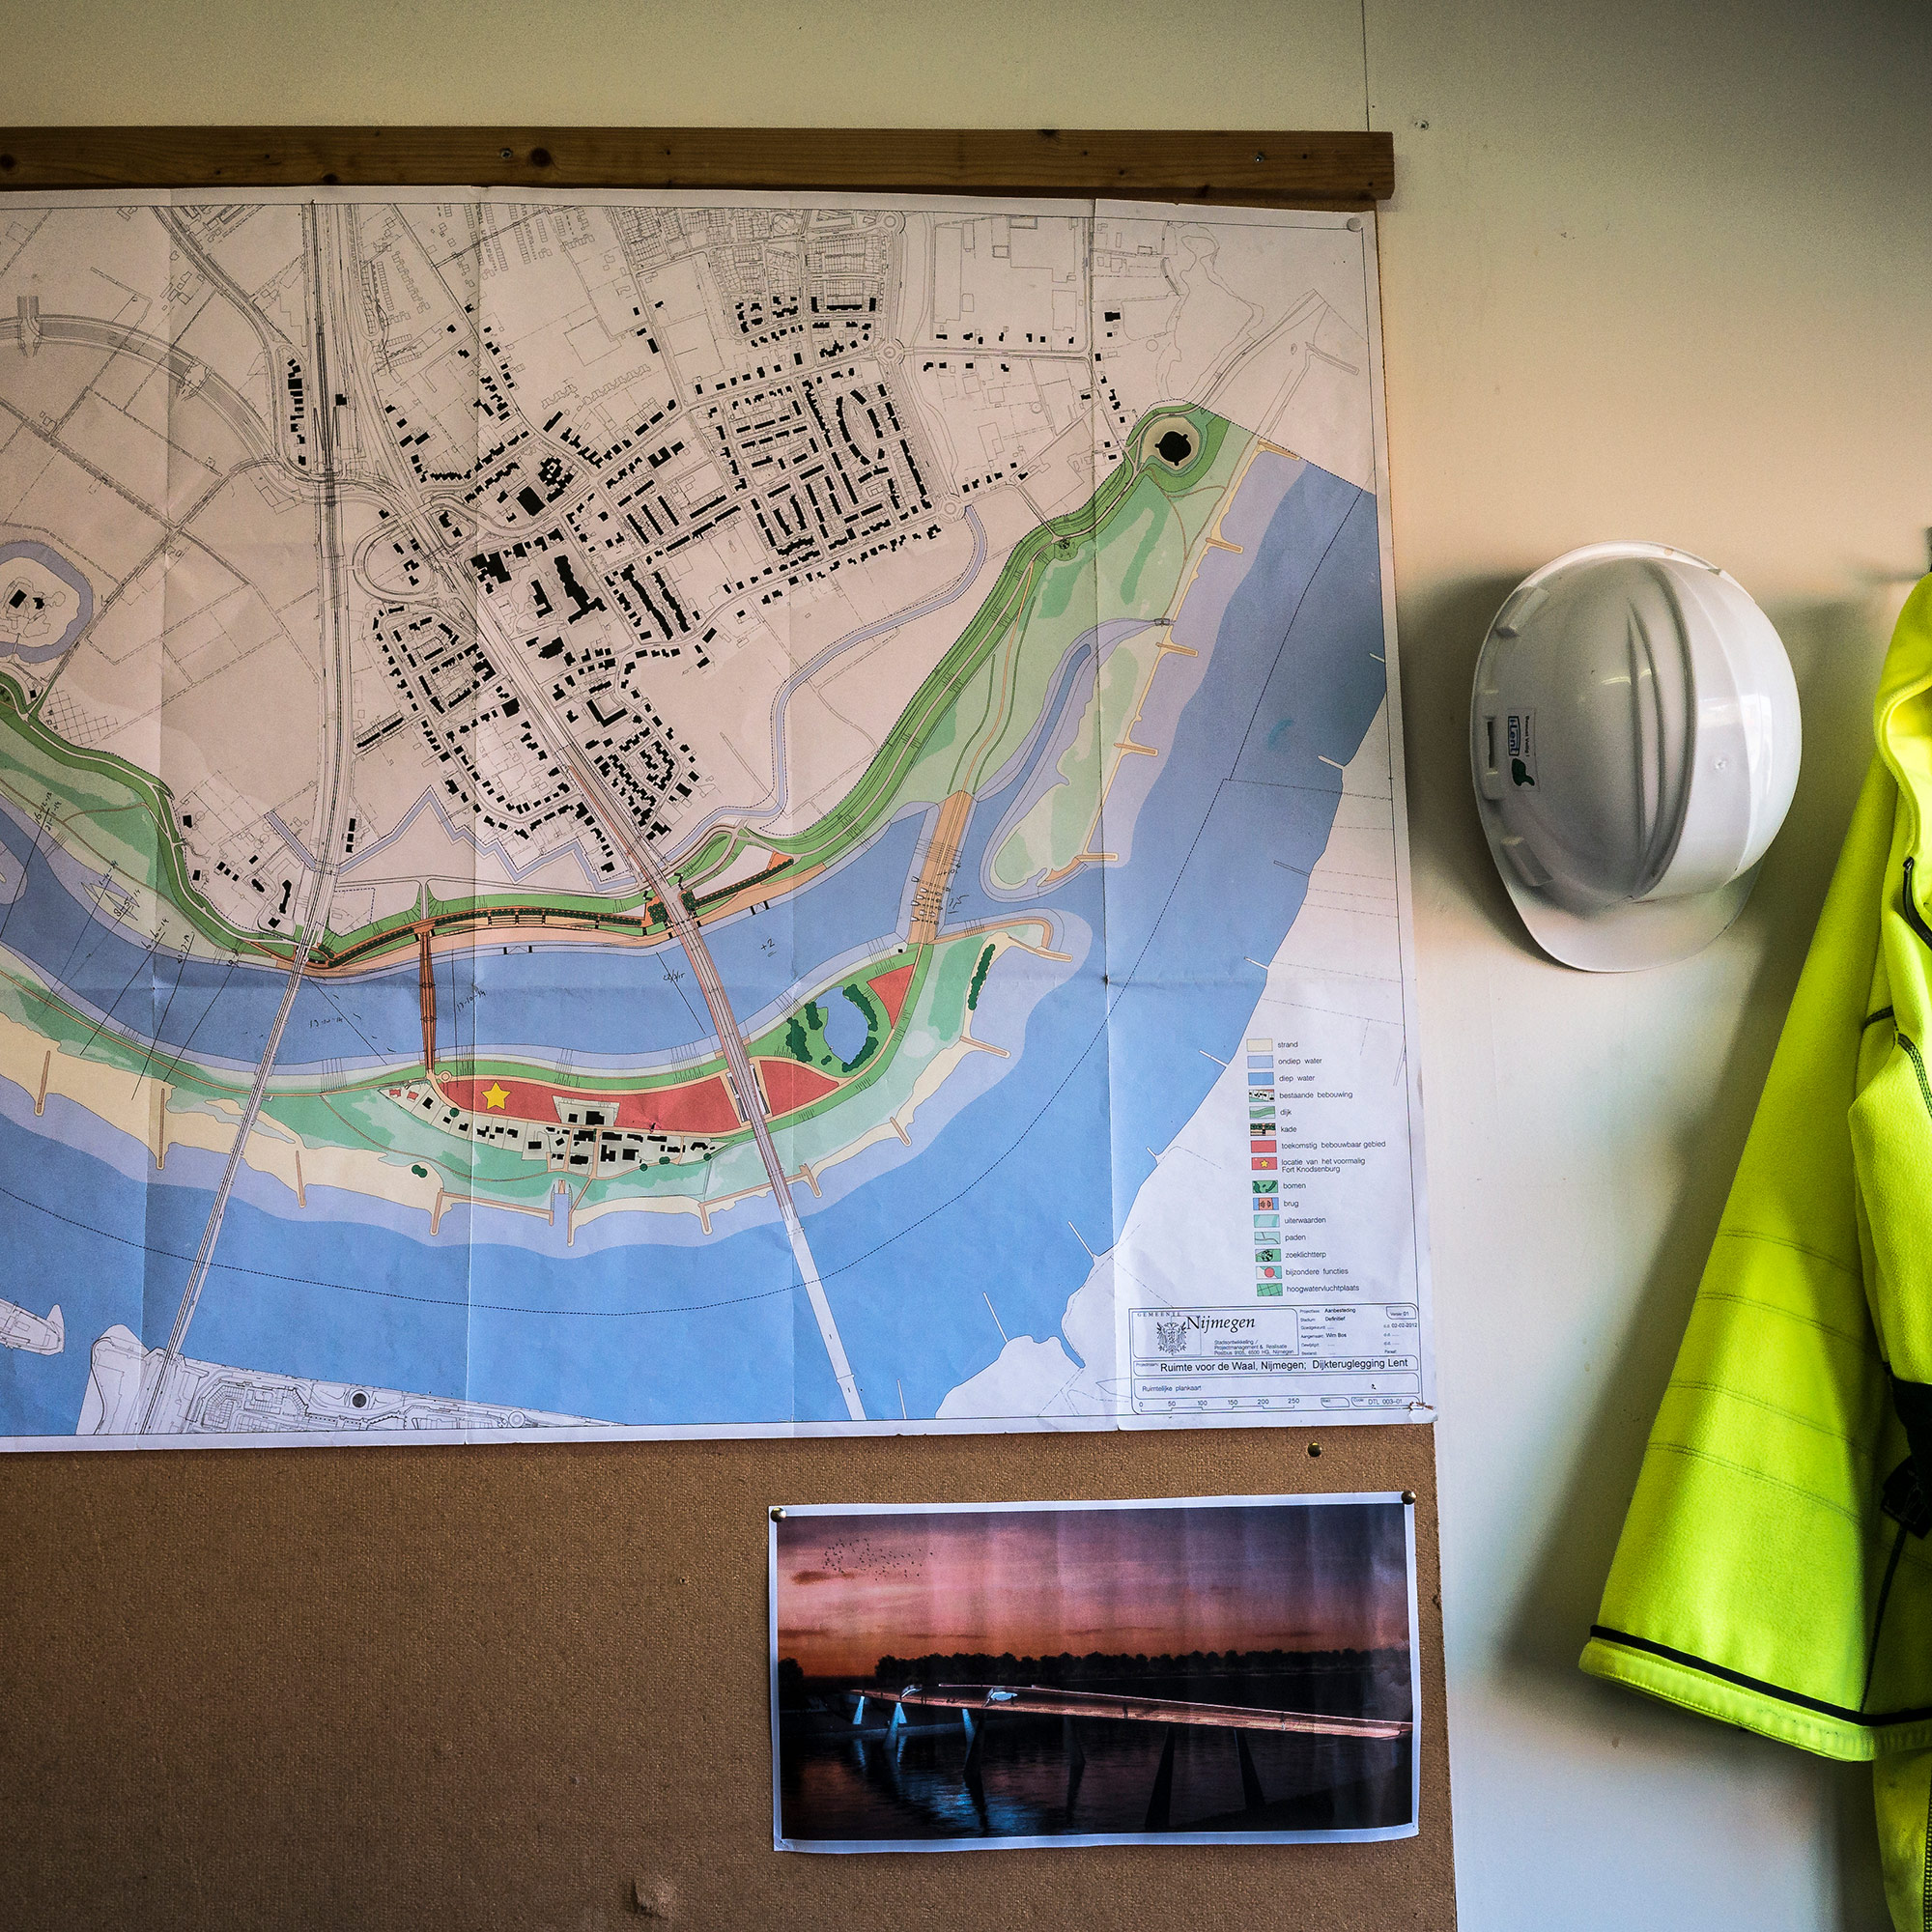 Project plans for Room for the River in Nijmegen. (Photo by Joris van Gennip/GroundTruth)